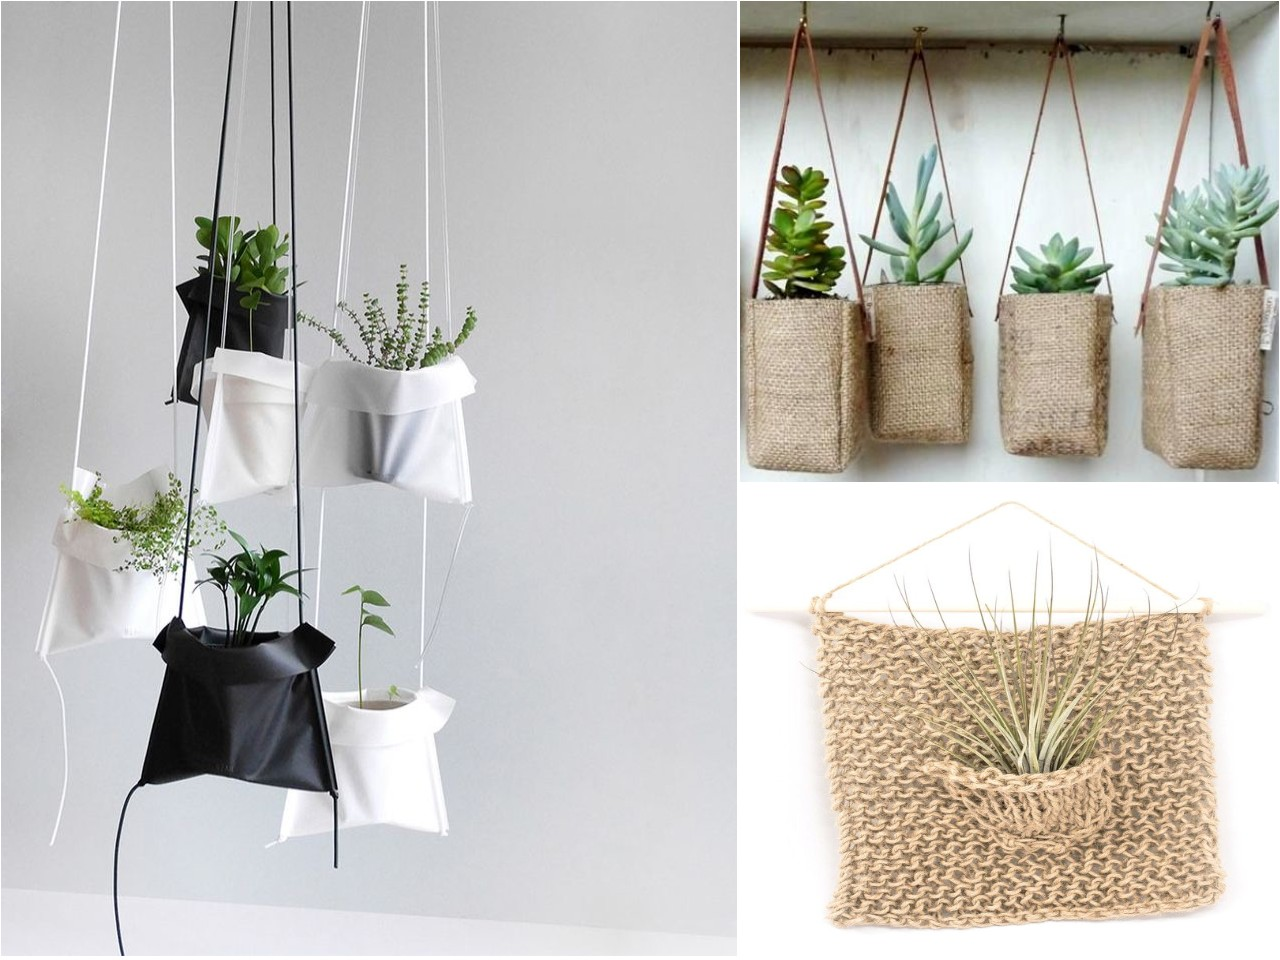 10 ideas de decoraci n con plantas colgantes for Adornos originales para decorar casa